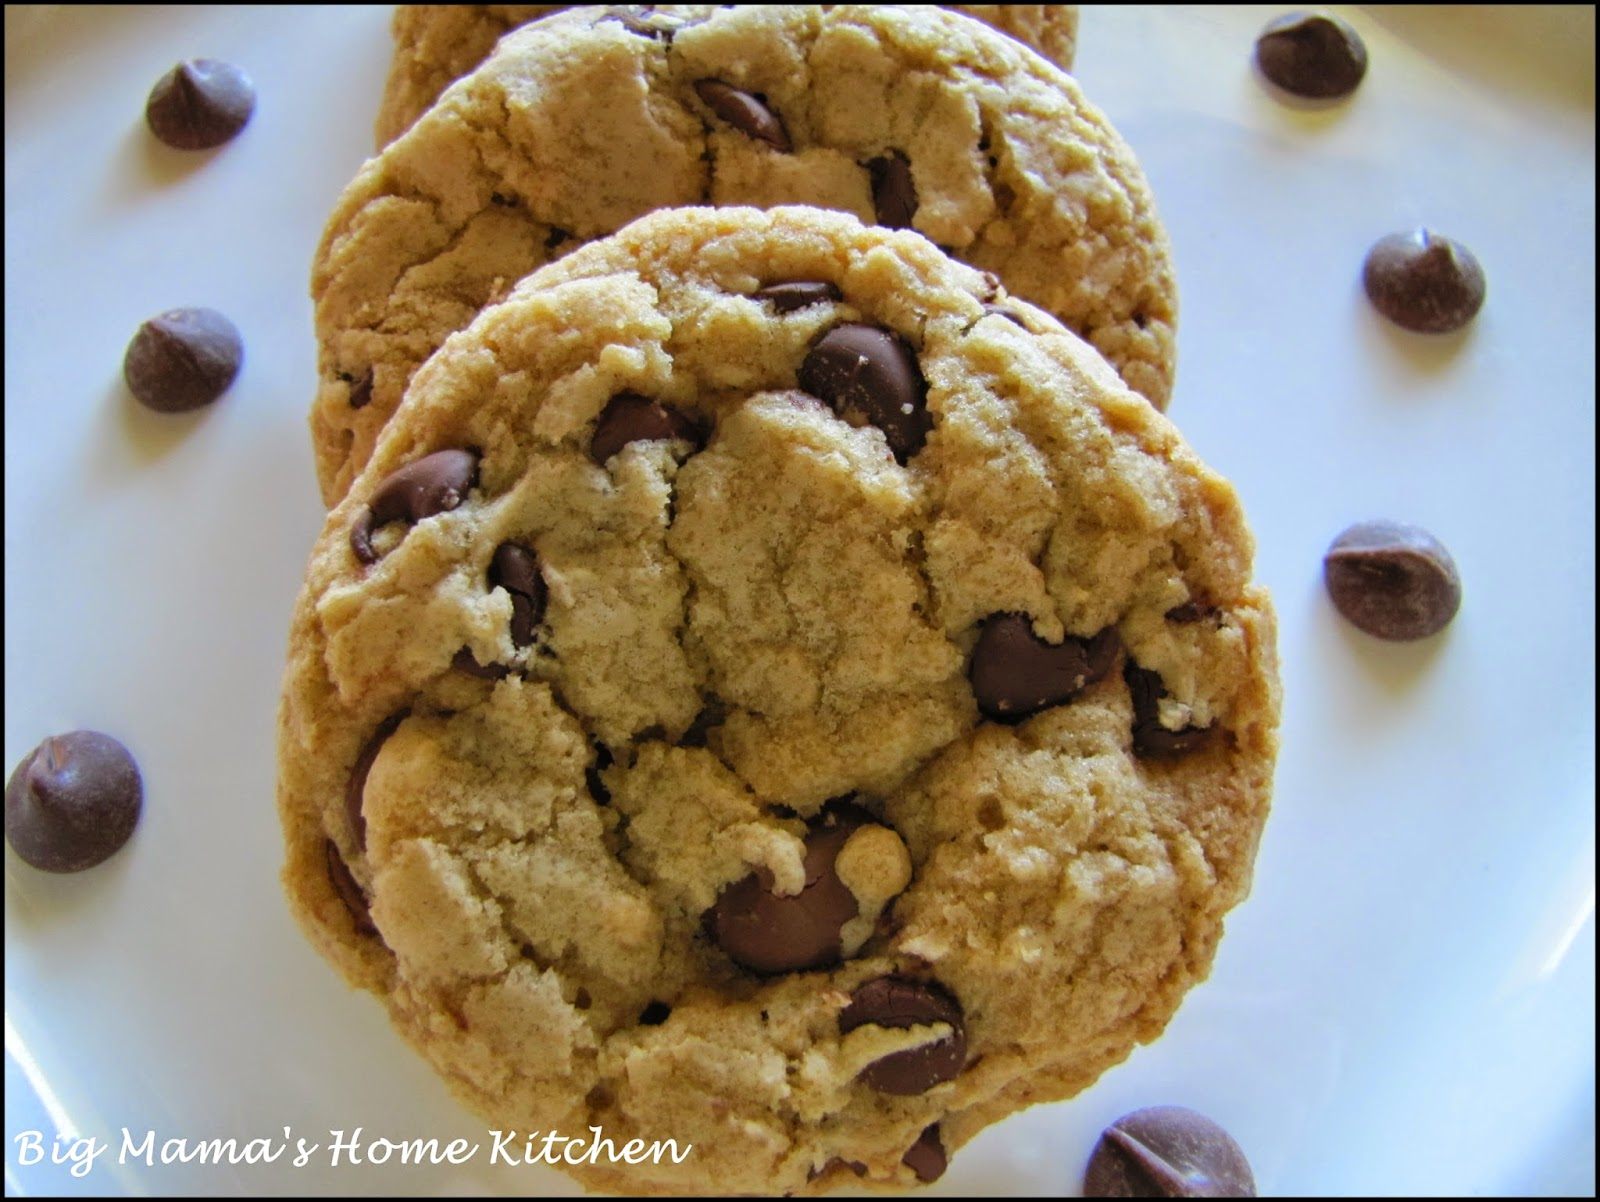 Big Mama's Home Kitchen: Thick and Chewy Chocolate Chip Cookies